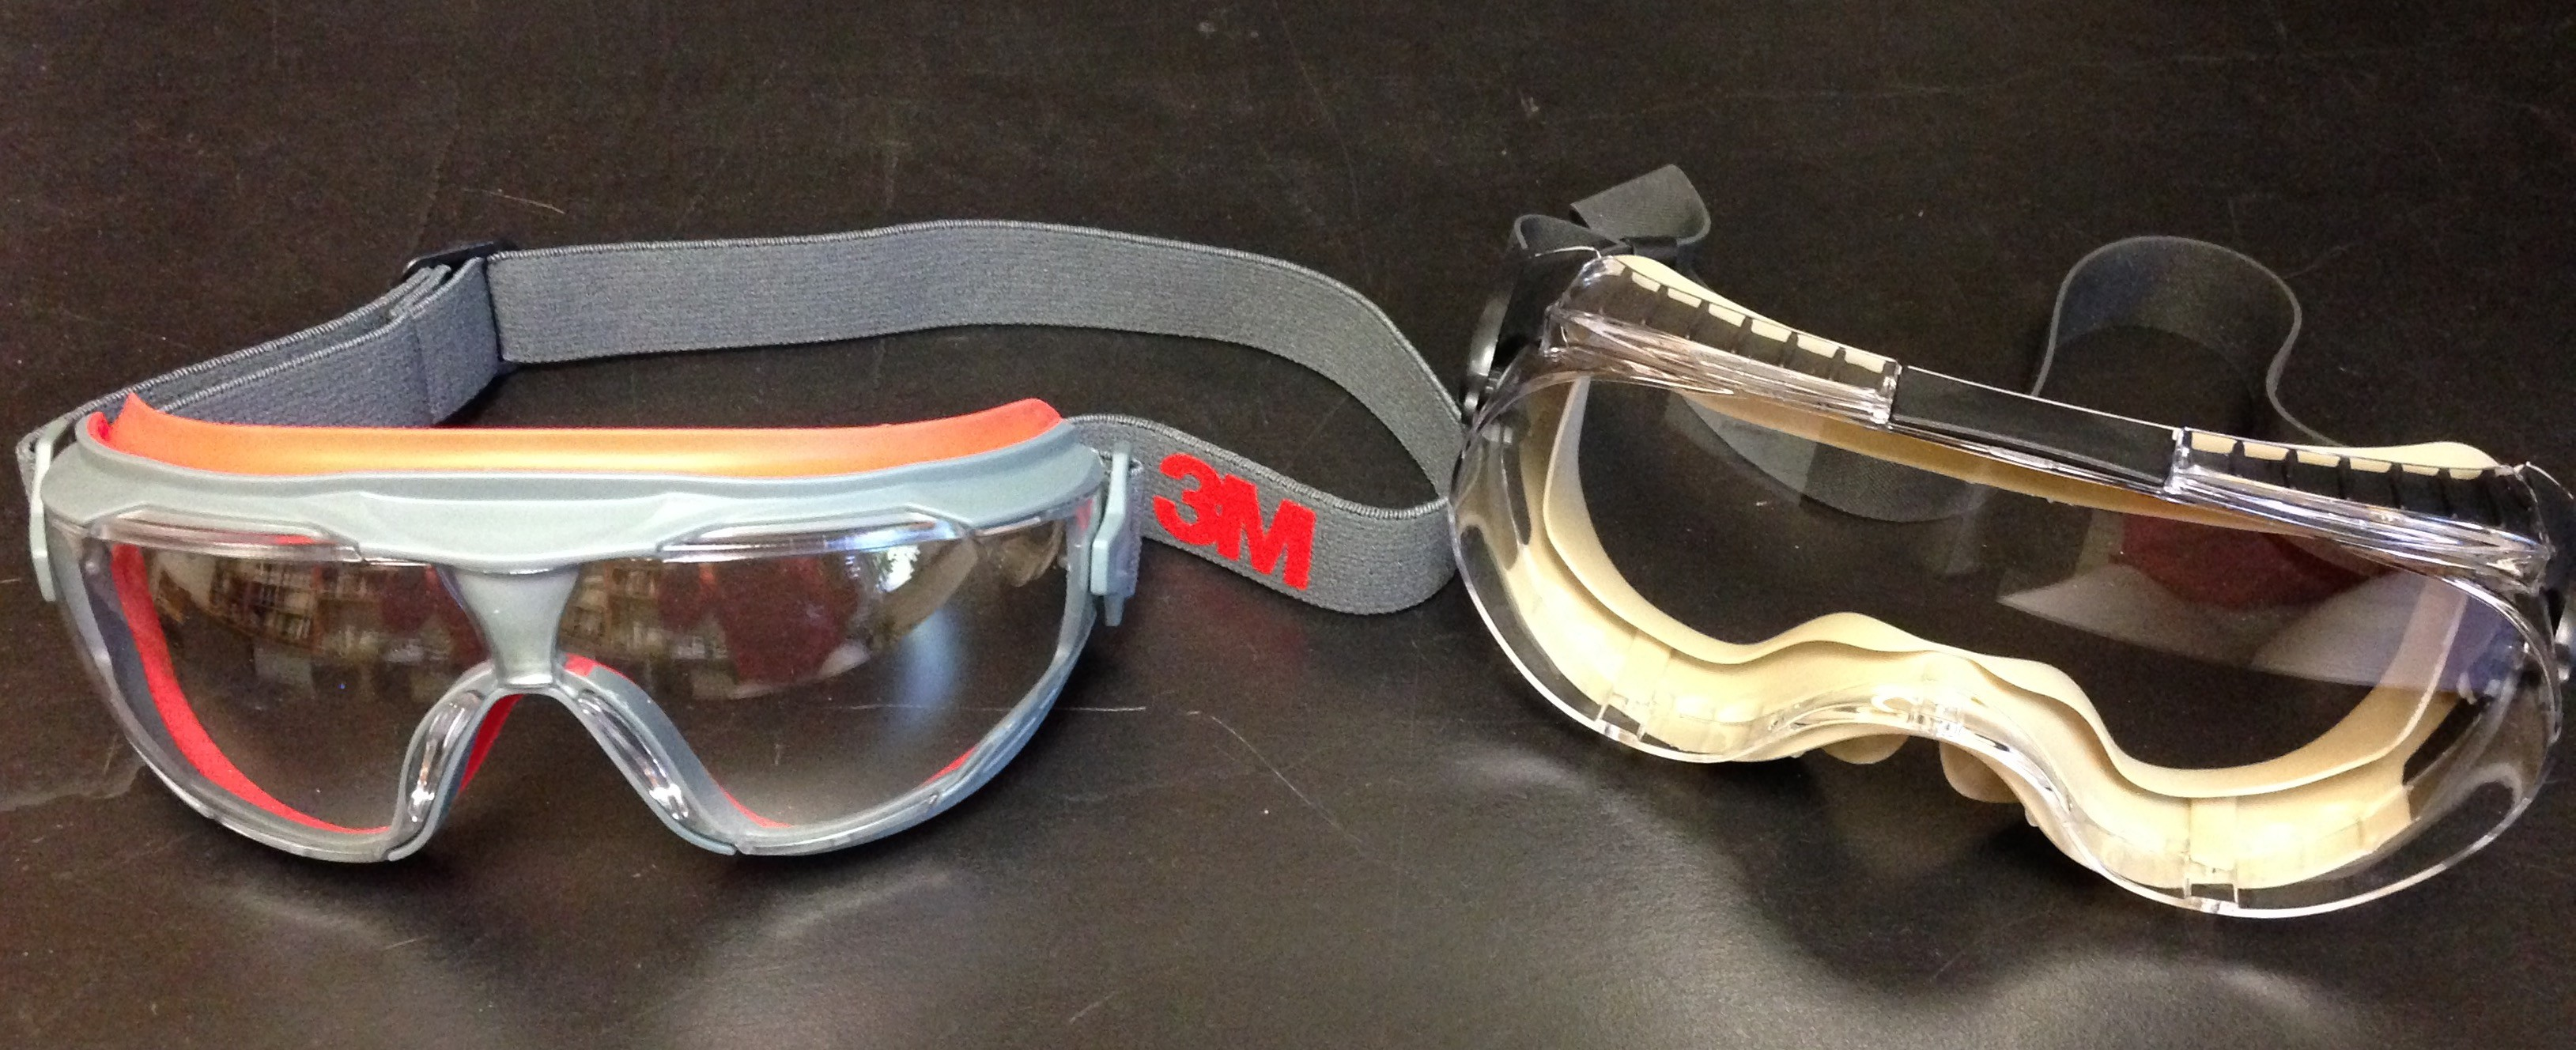 Goggle images